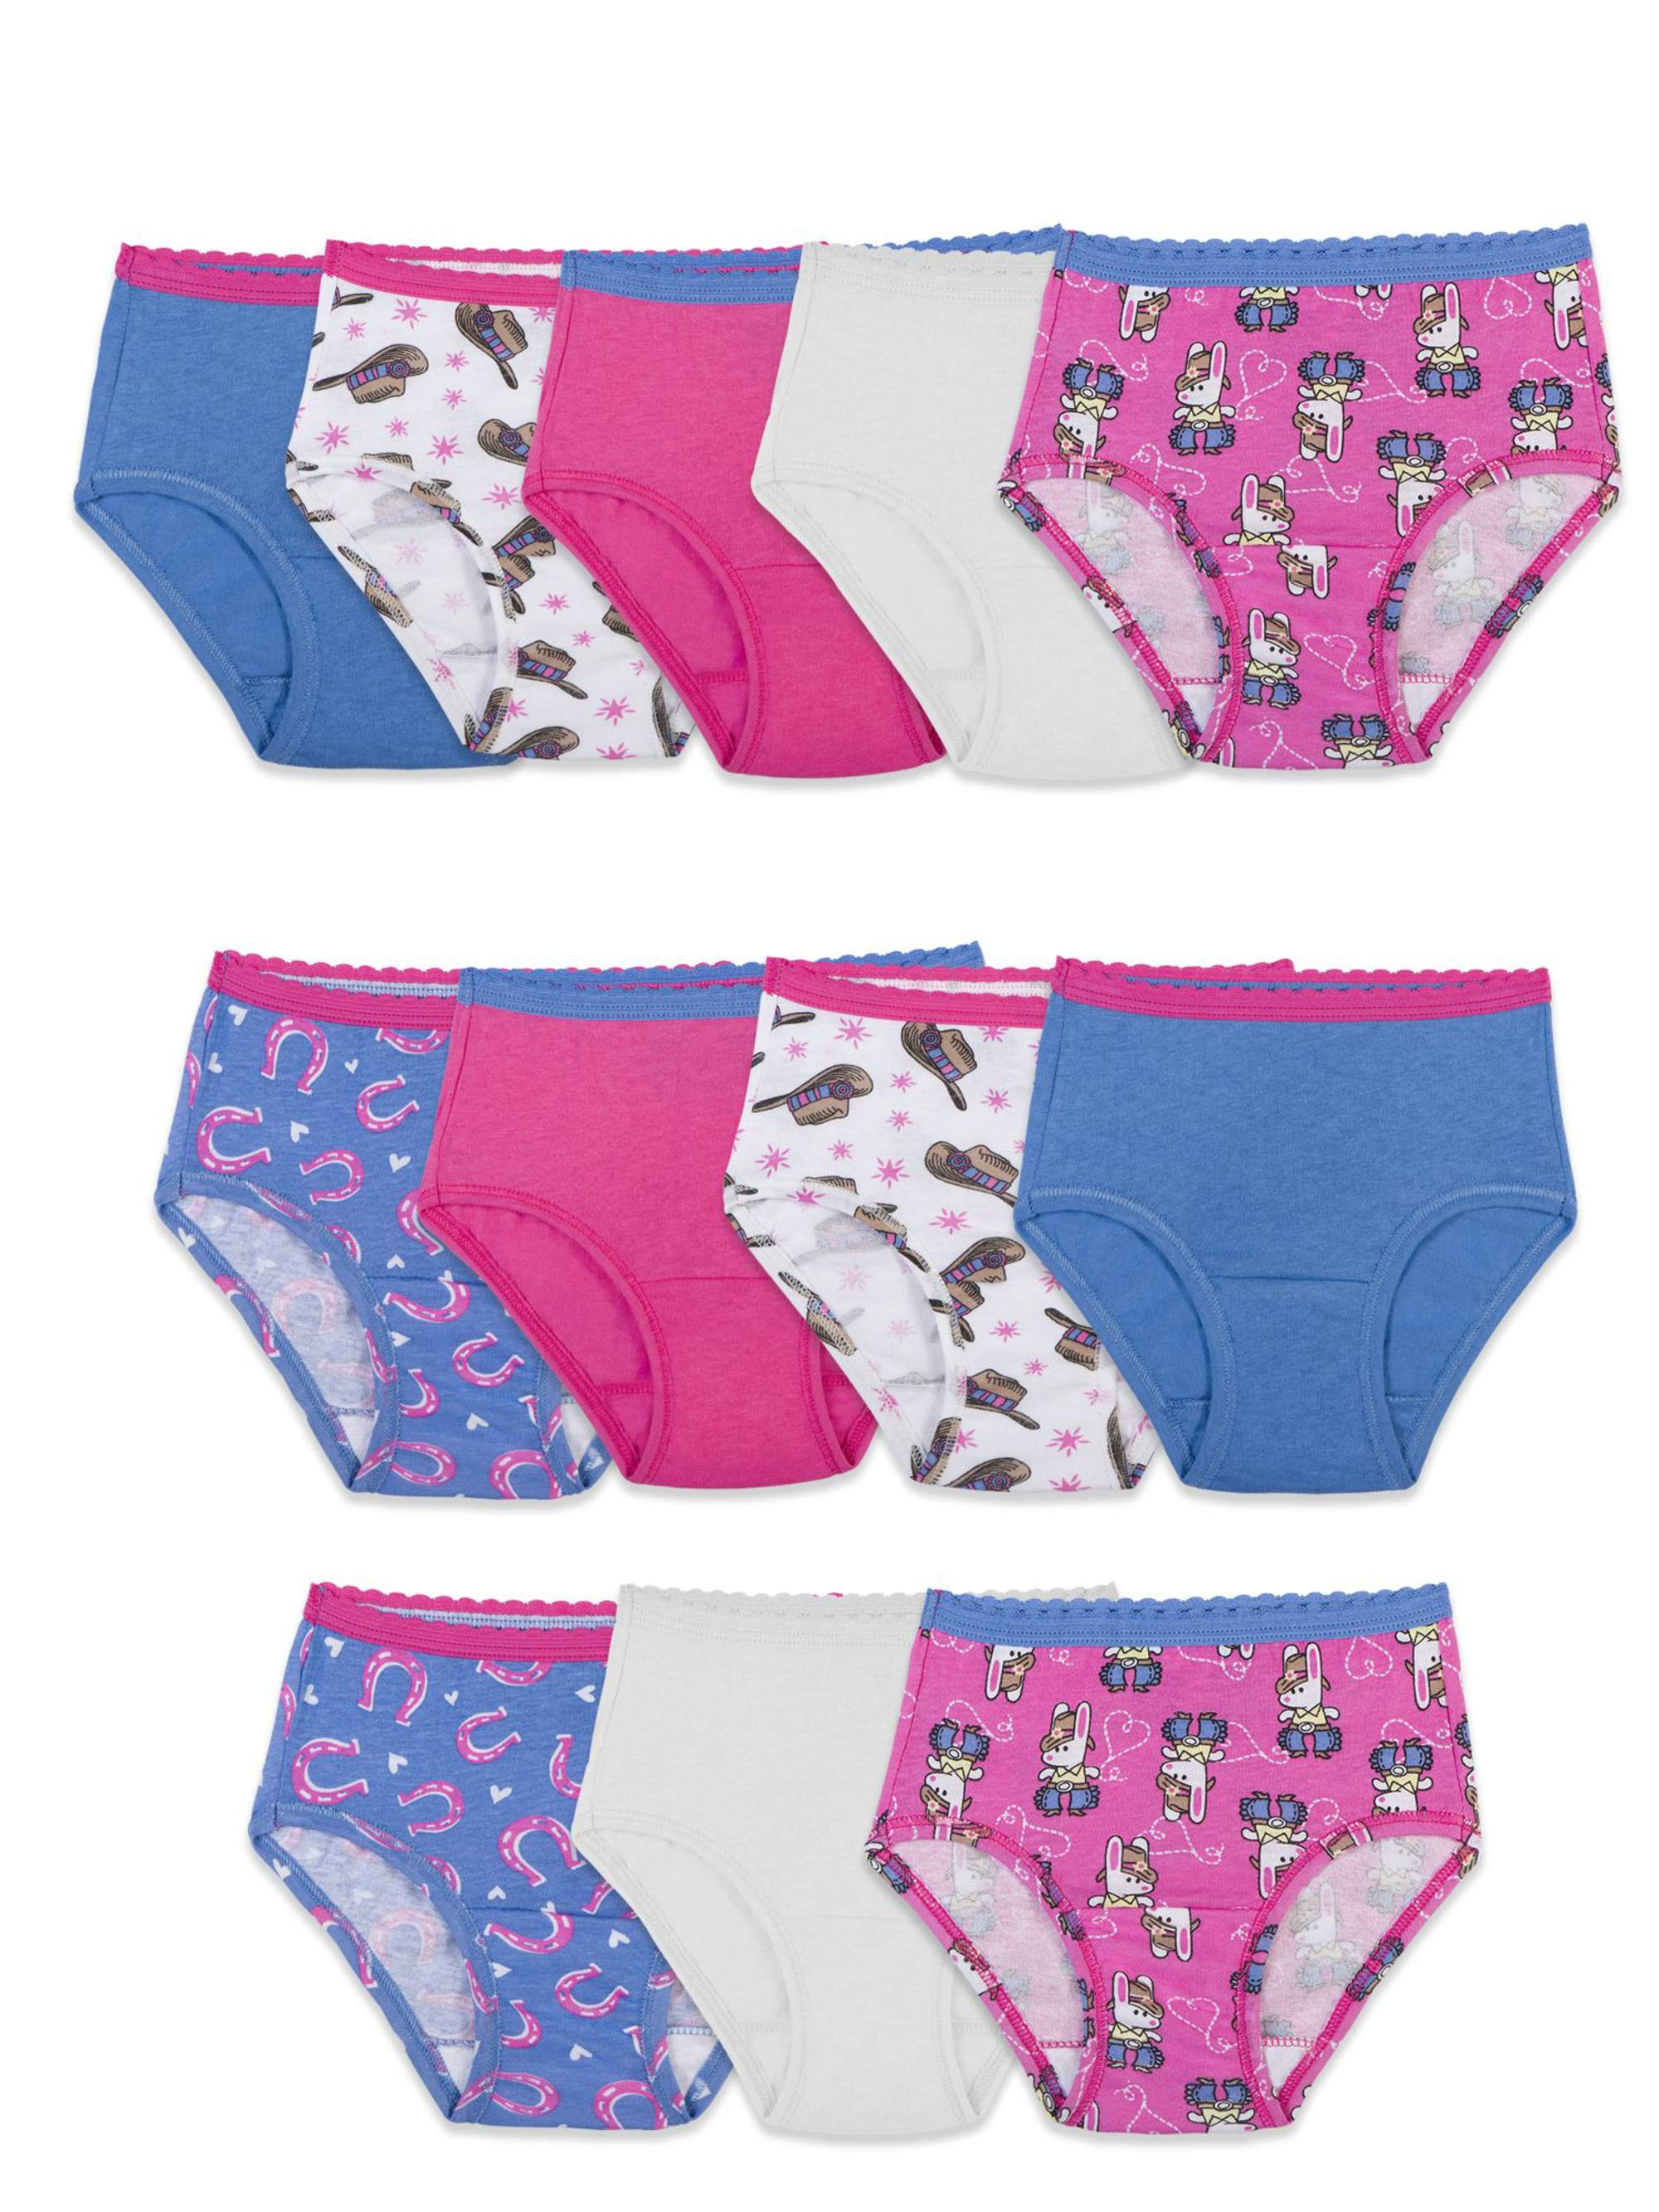 Assorted Color Cotton Briefs, 12 Pack (Toddler Girls)